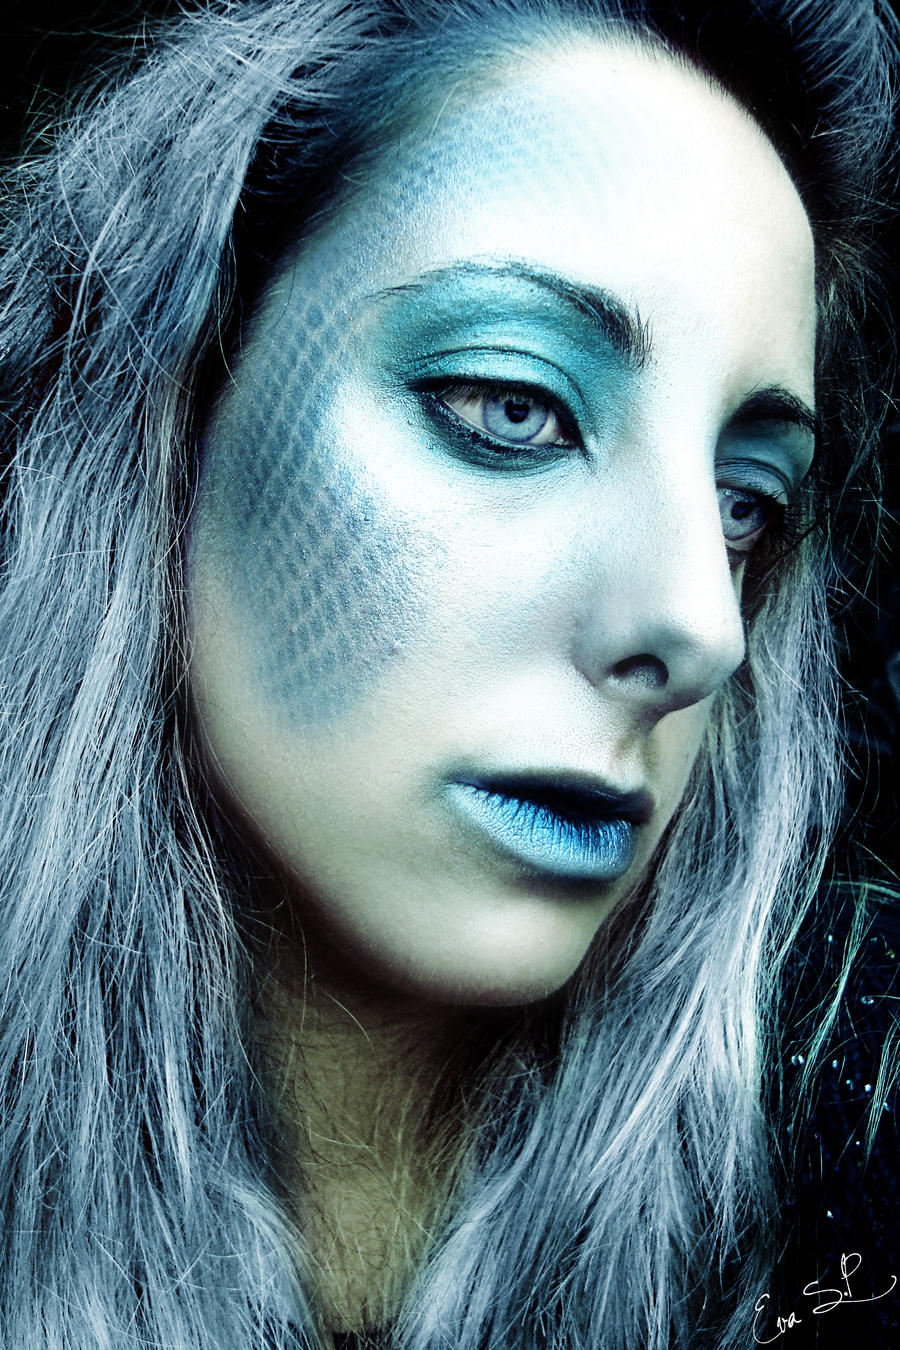 The Sad Mermaid (Halloween makeup) by Chuchy5